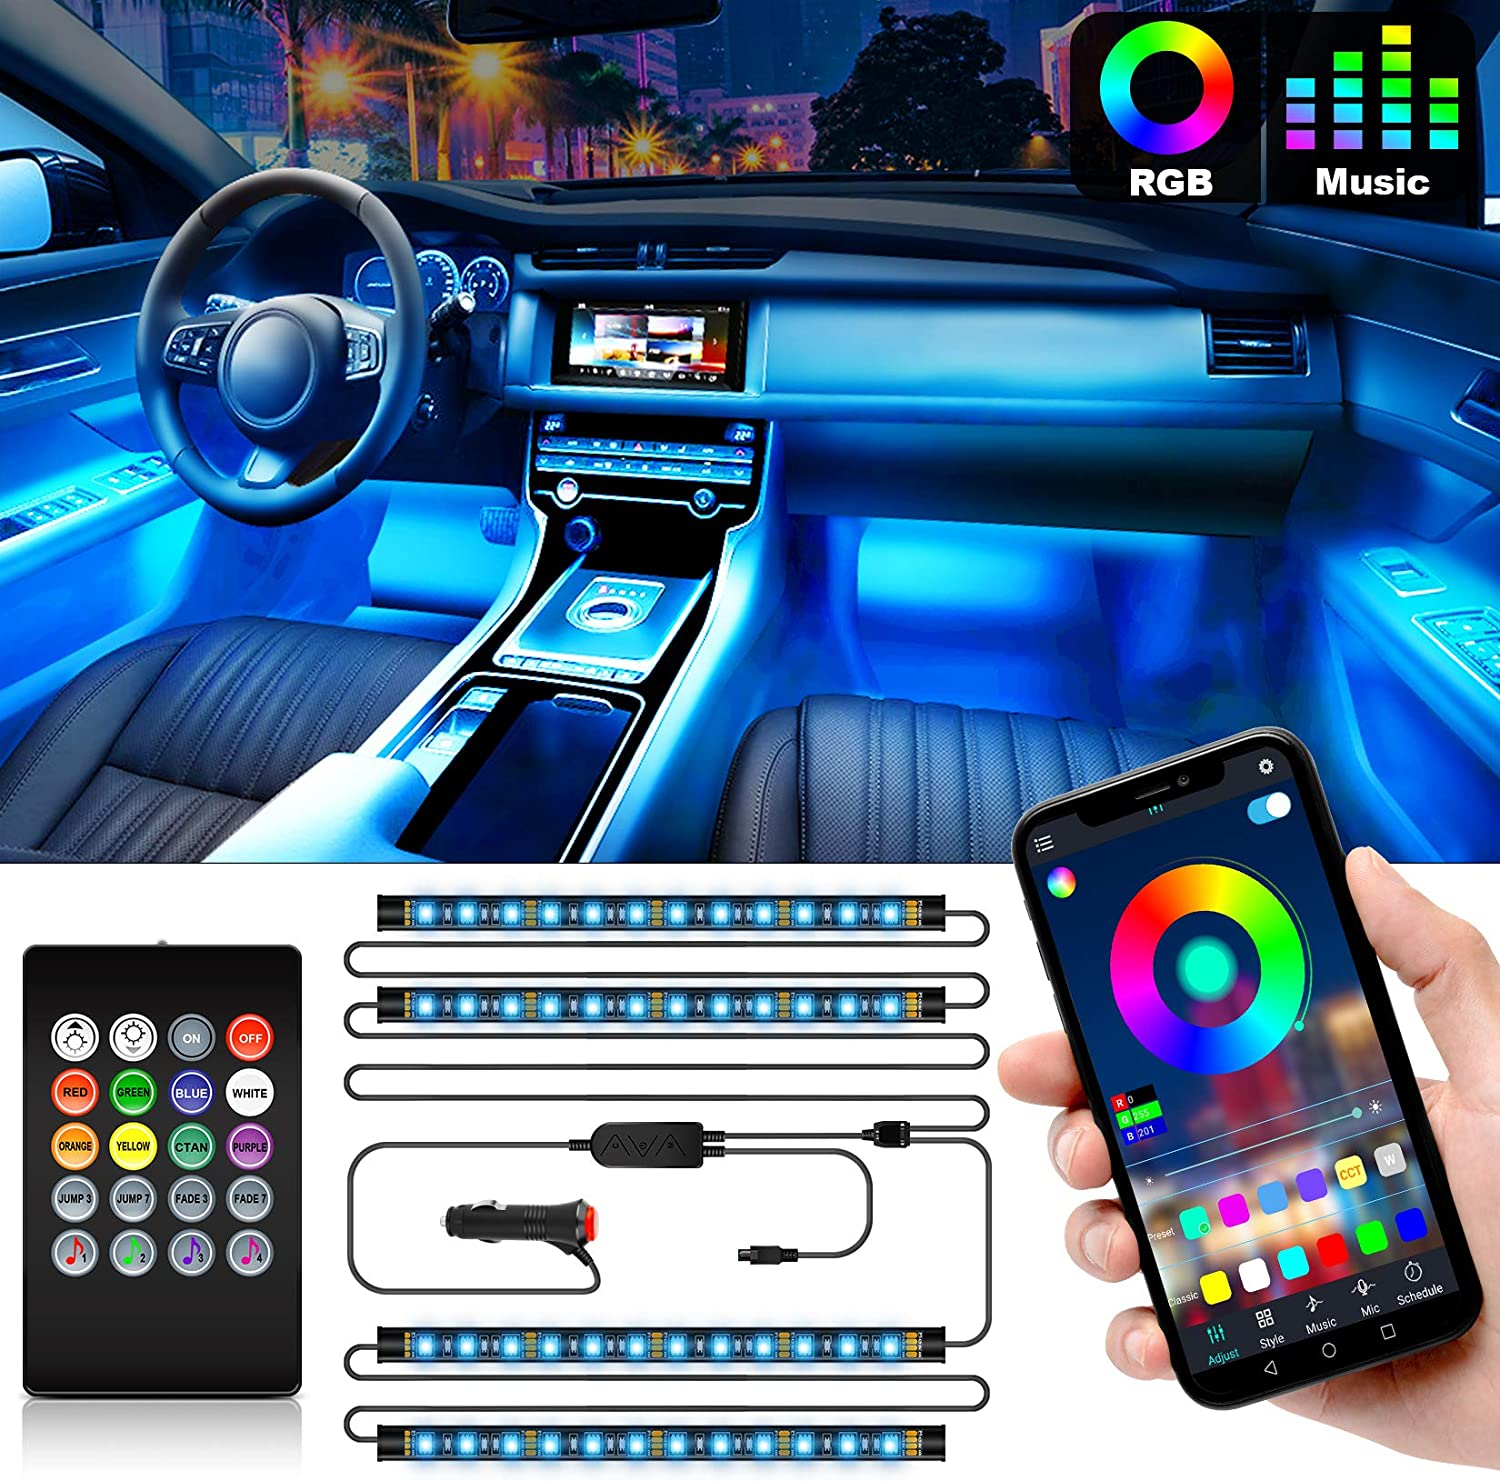 CT CAPETRONIX Interior Car Lights Car led strip lights interior with APP and IR Remote Upgrade 2-in-1 4pcs Waterproof RGB 48 LEDs Music Car LED Lights Under Dash Lighting Kit with Car Charger DC 12V